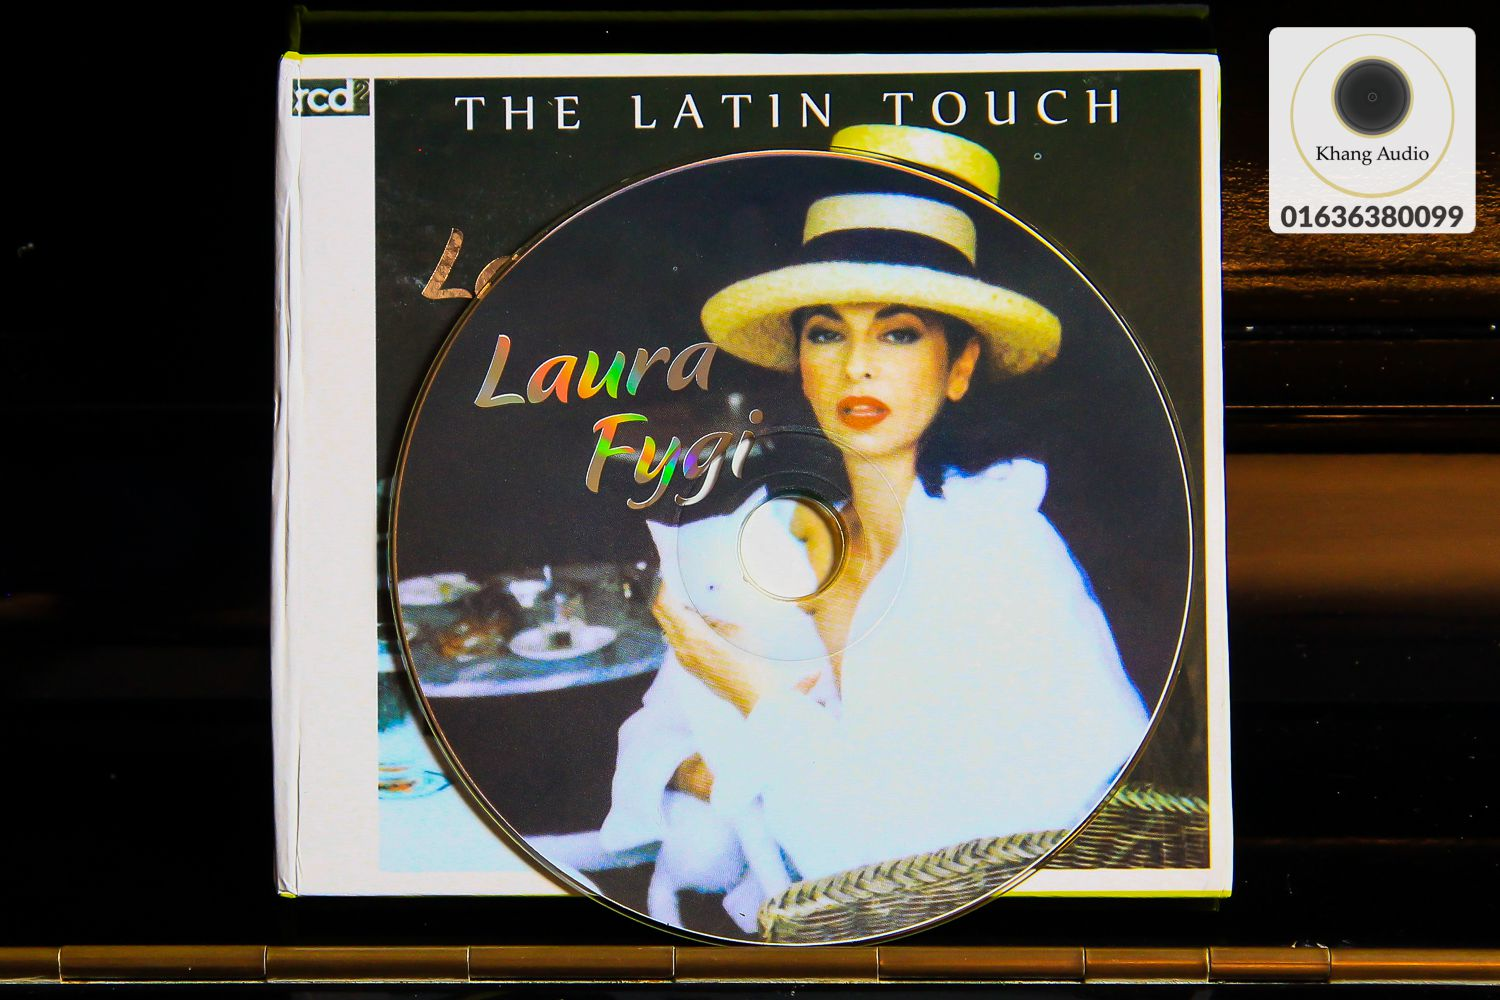 The Latin Touch - Laura Fygi QT